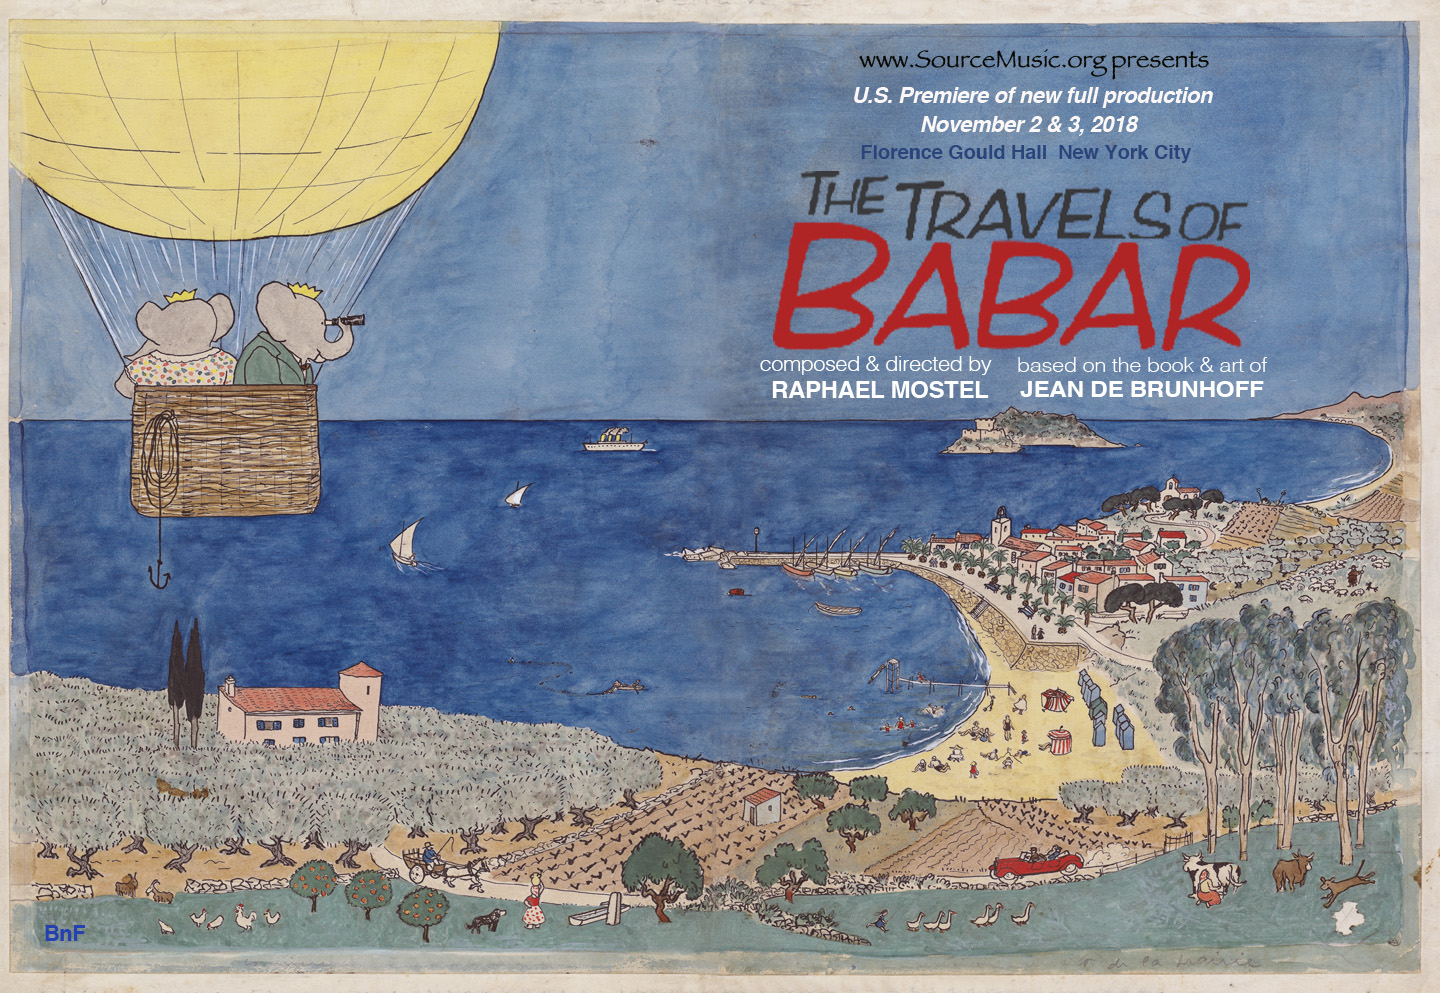 Poster for Source Music, Inc. U.S. Premiere of full new Florence Gould Foundation production complete, at Florence Gould Hall, French Institute Alliance Française, NYC, November 2018.  Image credit: Jean de Brunhoff original watercolor from  Le Voyage de Babar , Collection Bibliothèque nationale de France, used with permission